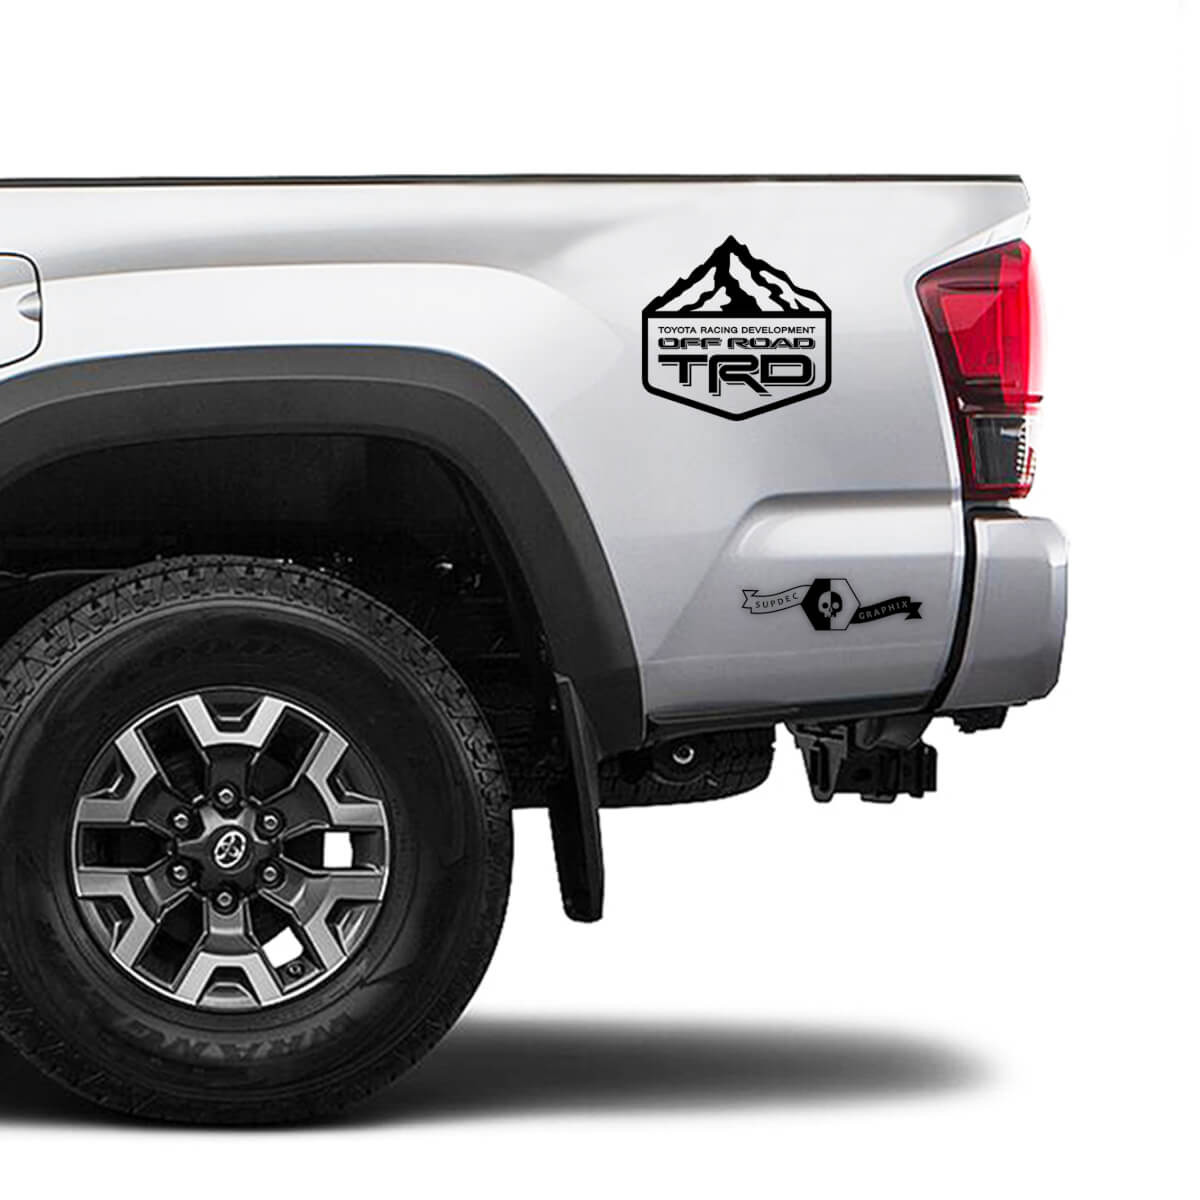 TRD Off Road TOYOTA Mountains Decals Stickers for Tacoma Tundra 4Runner Hilux side